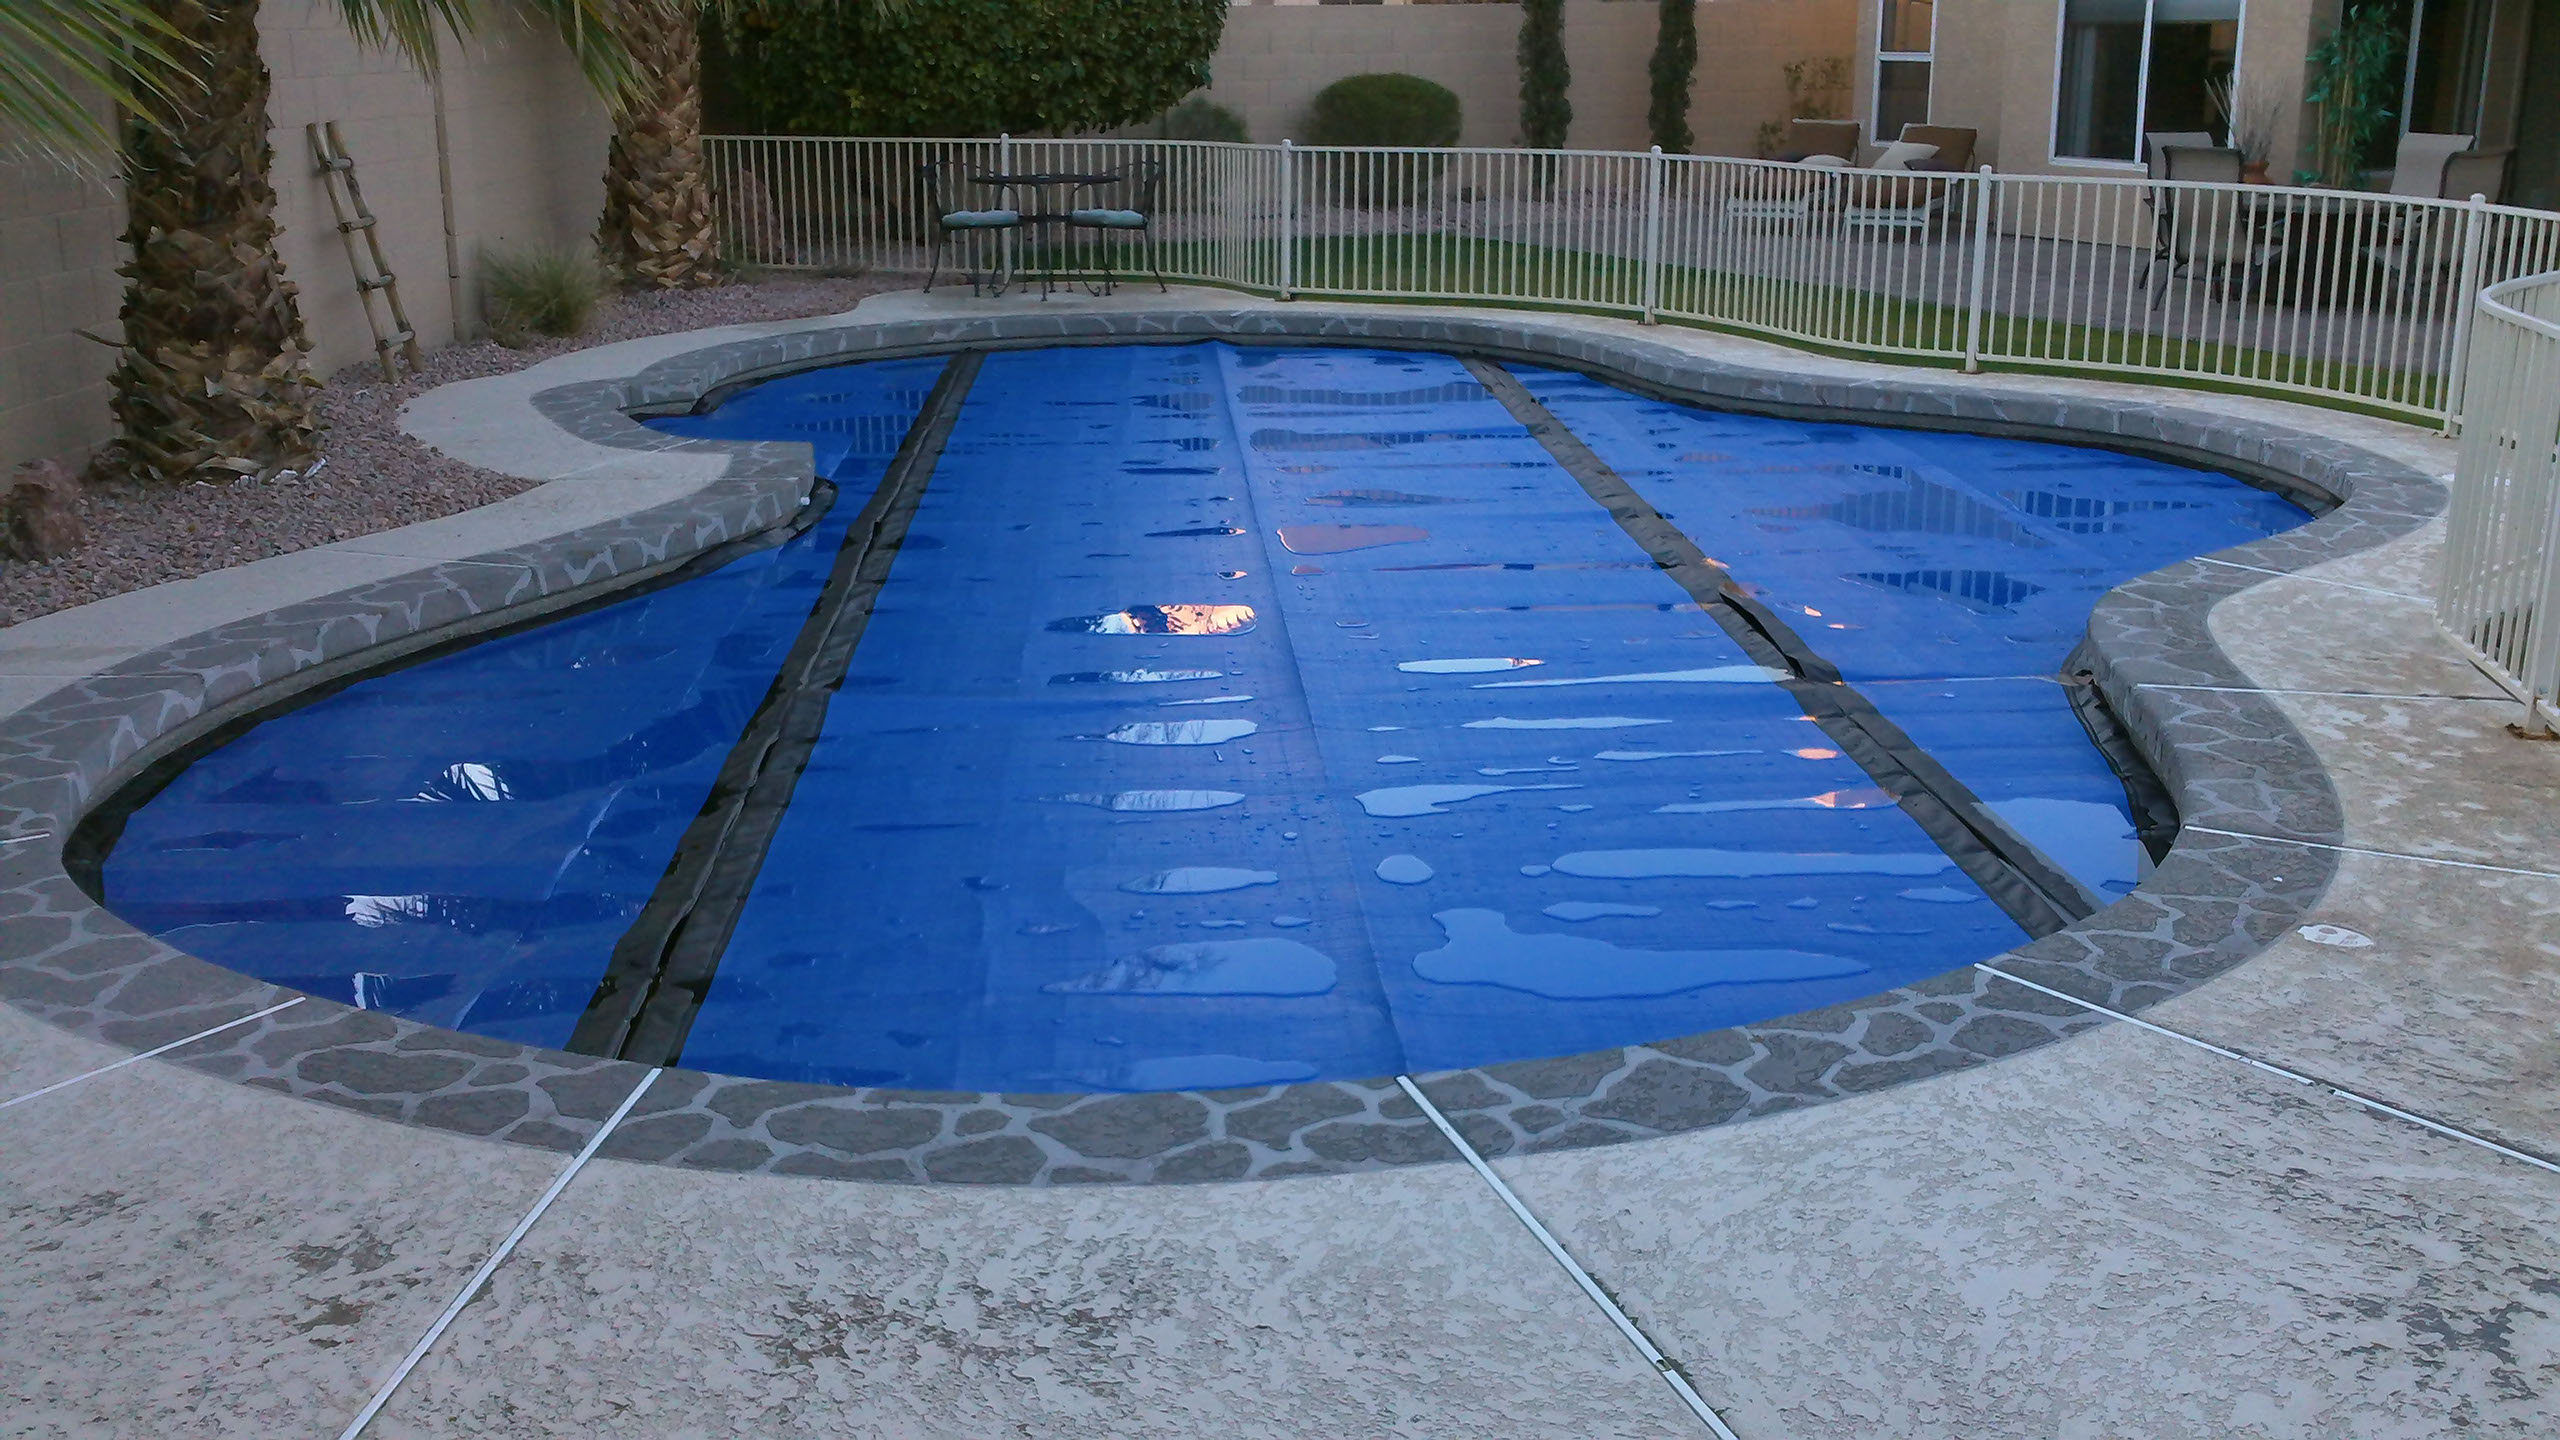 The Environmental Benefits Of Pool Covers New York City Ny Patch